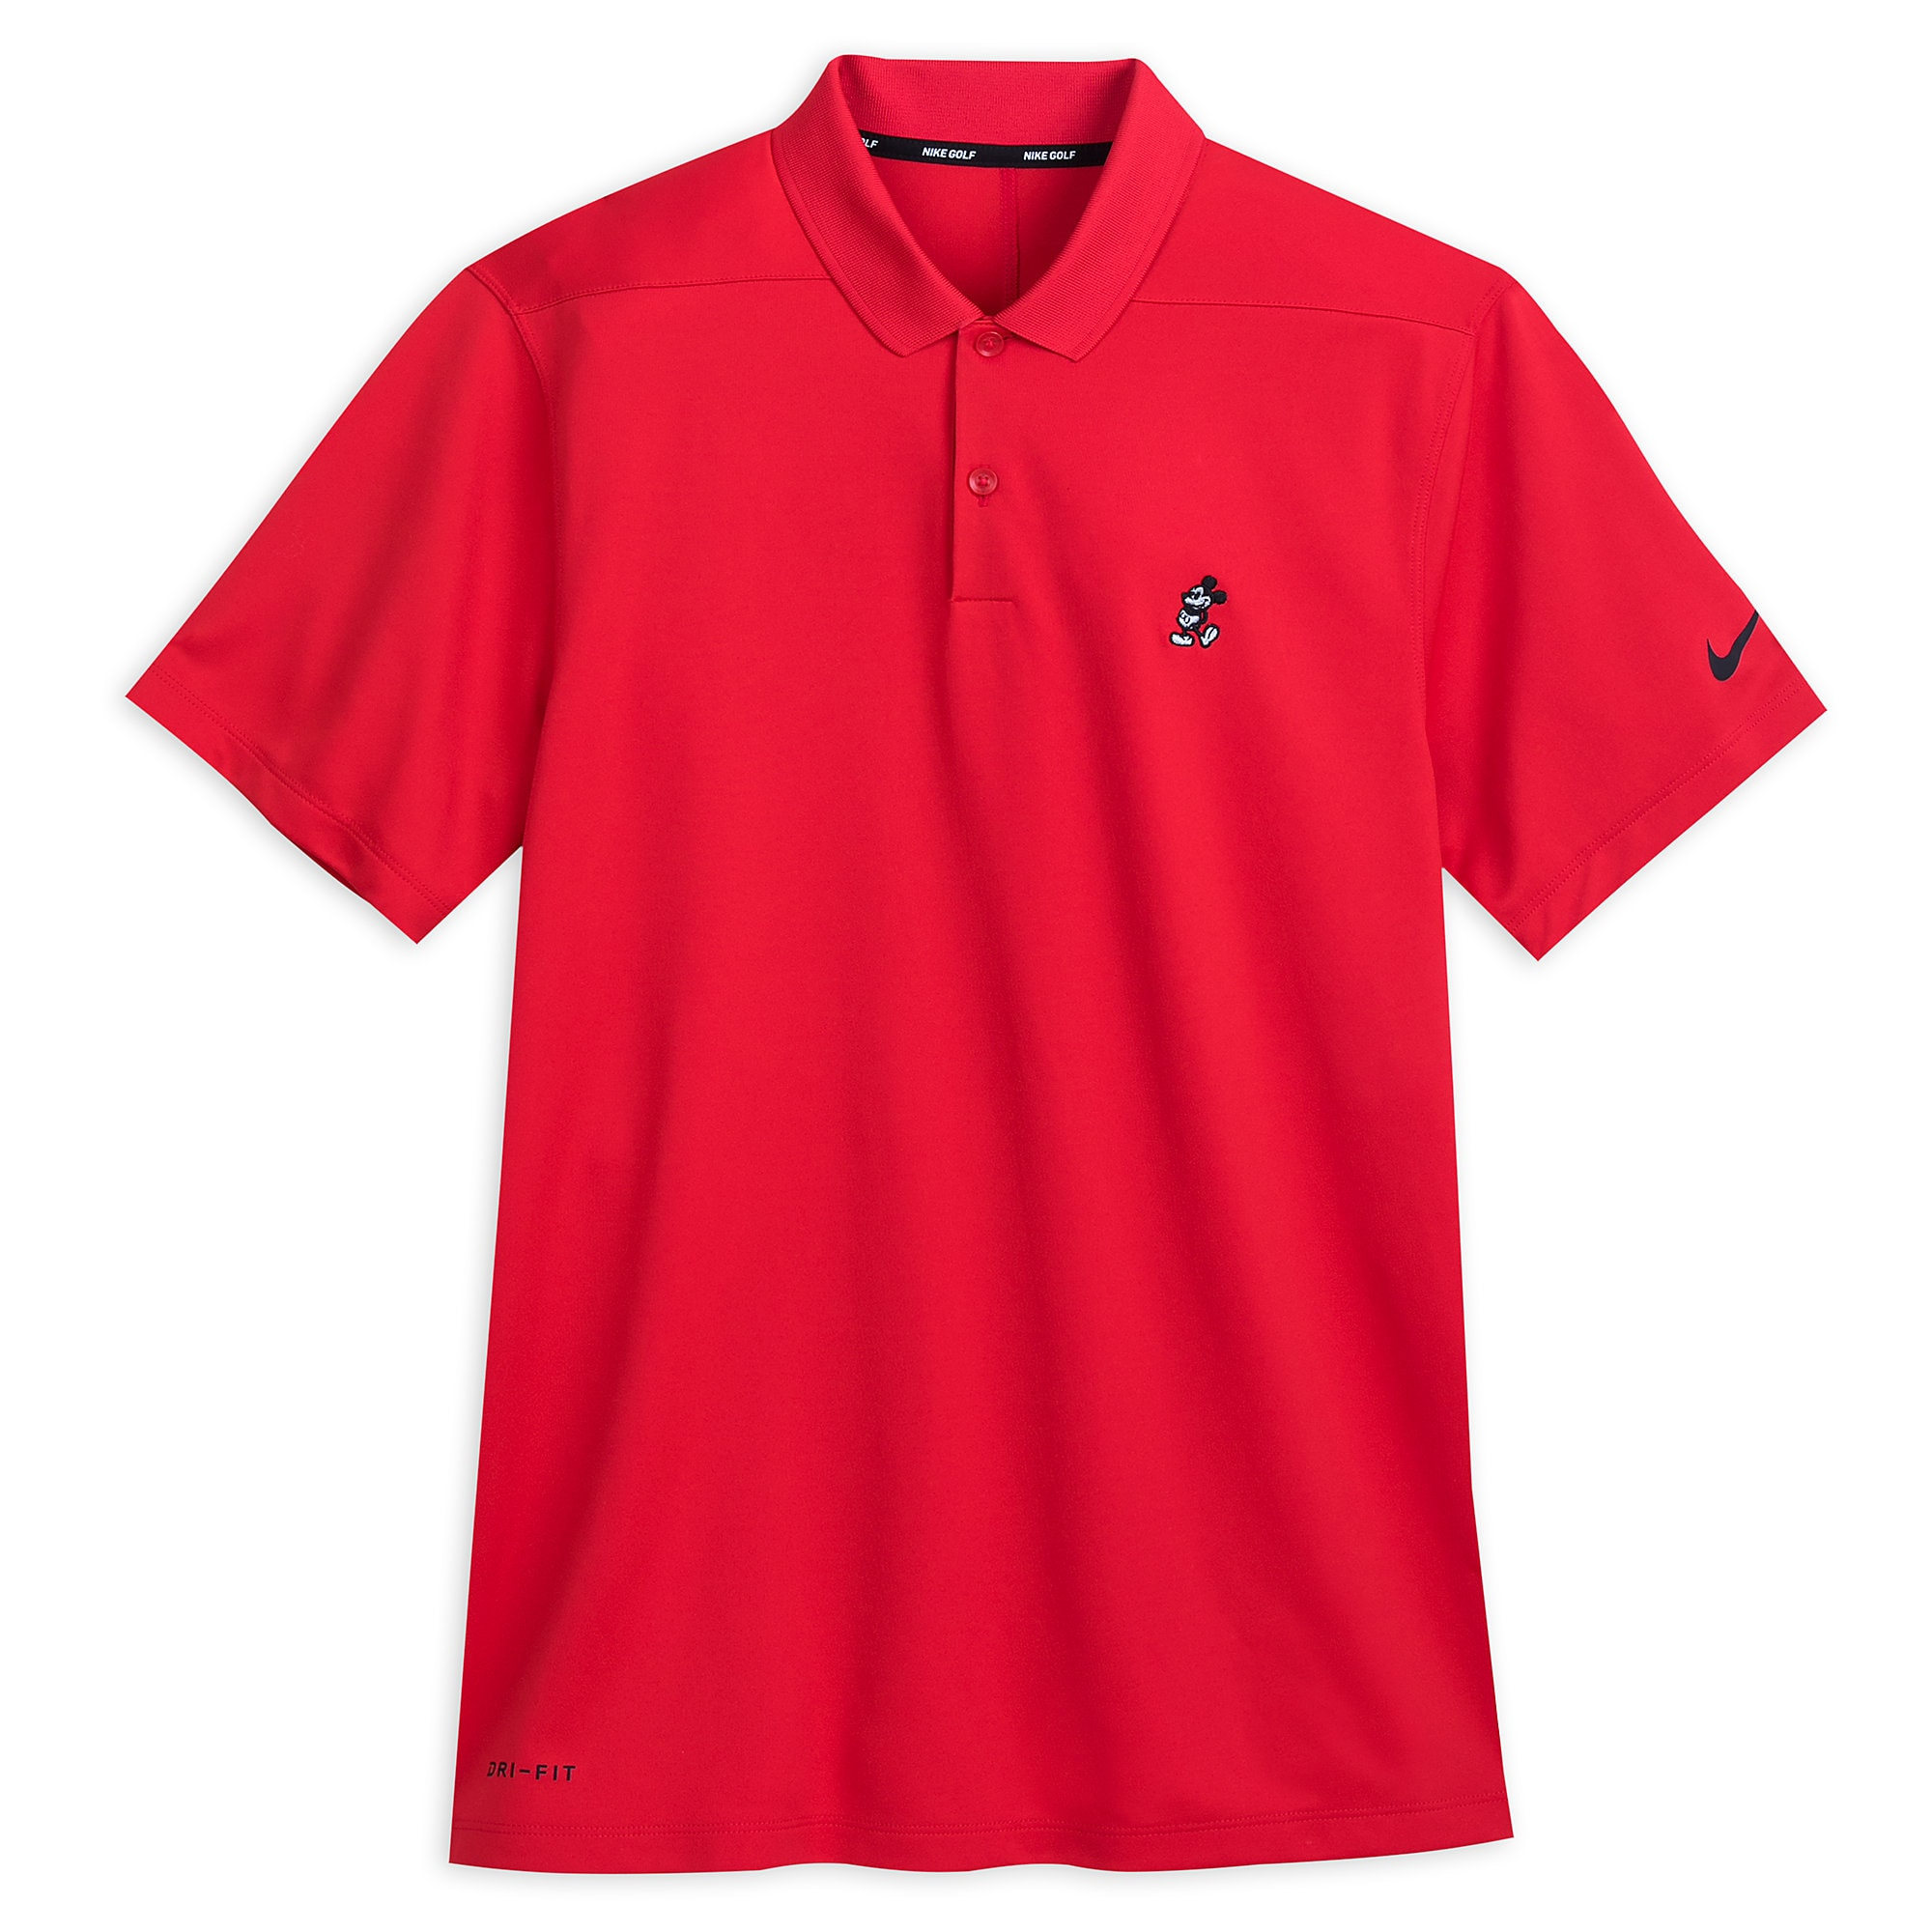 d2377c99 Mickey Mouse Performance Polo Shirt for Men by Nike Golf - Red | shopDisney